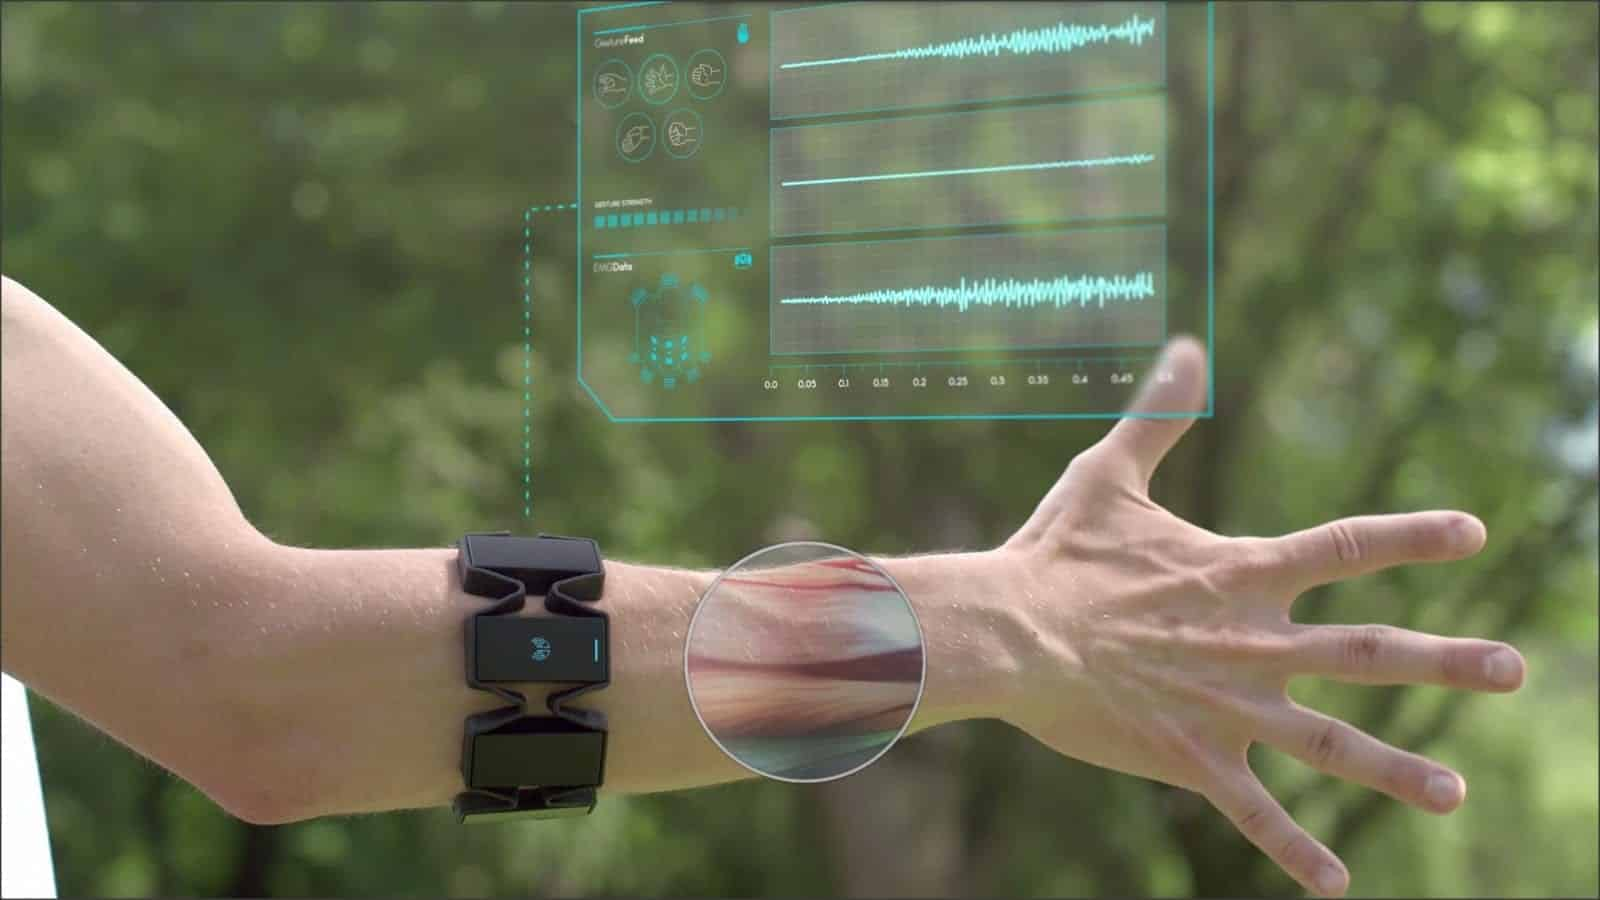 6 Most Astonishing Technology Inventions of 2018- myo armband